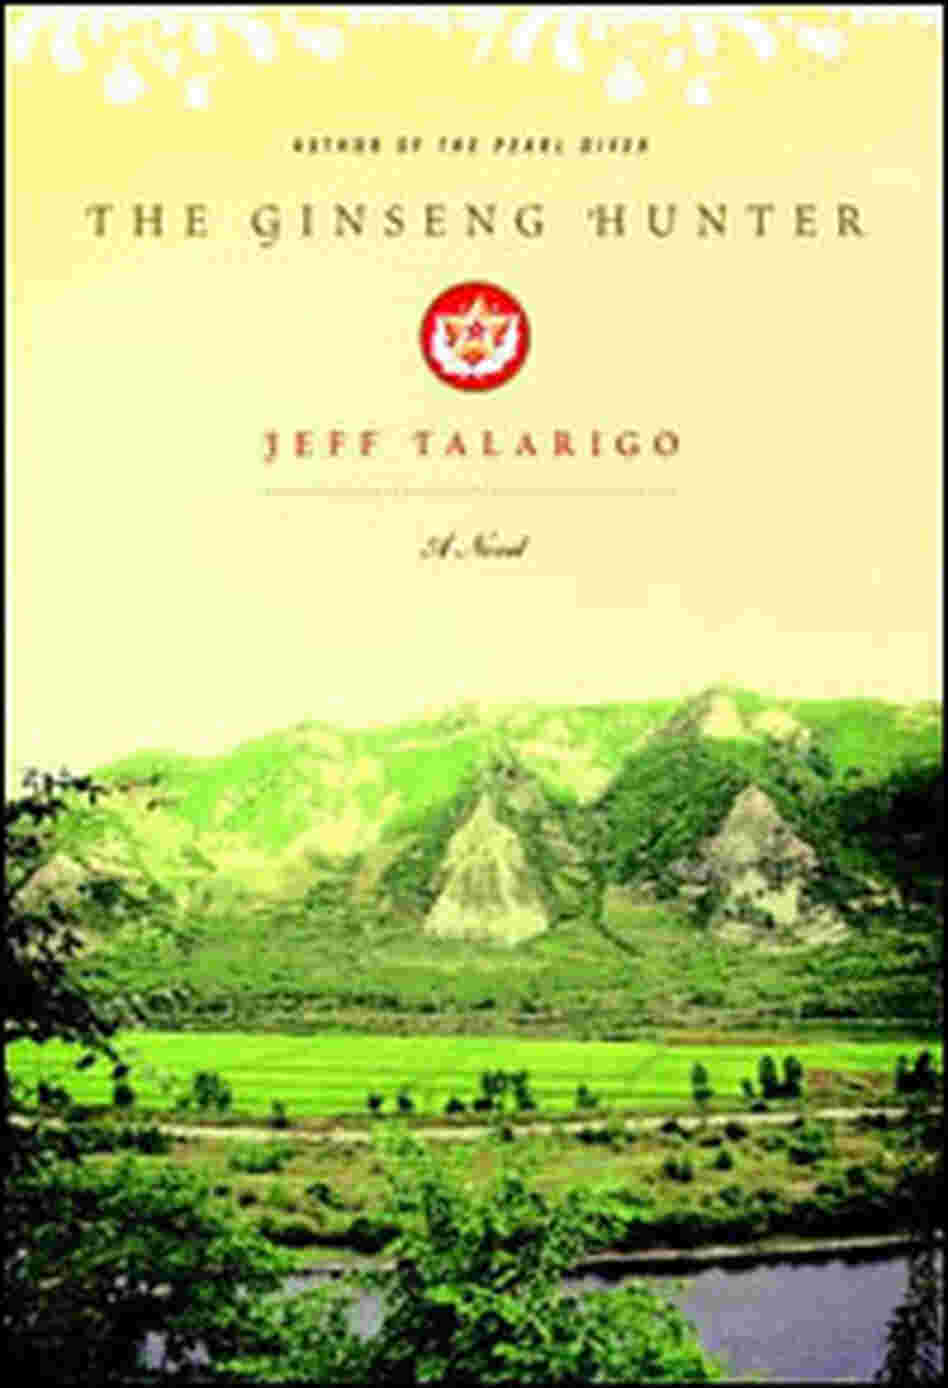 Jeff Talarigo's 'The Ginseng Hunter'